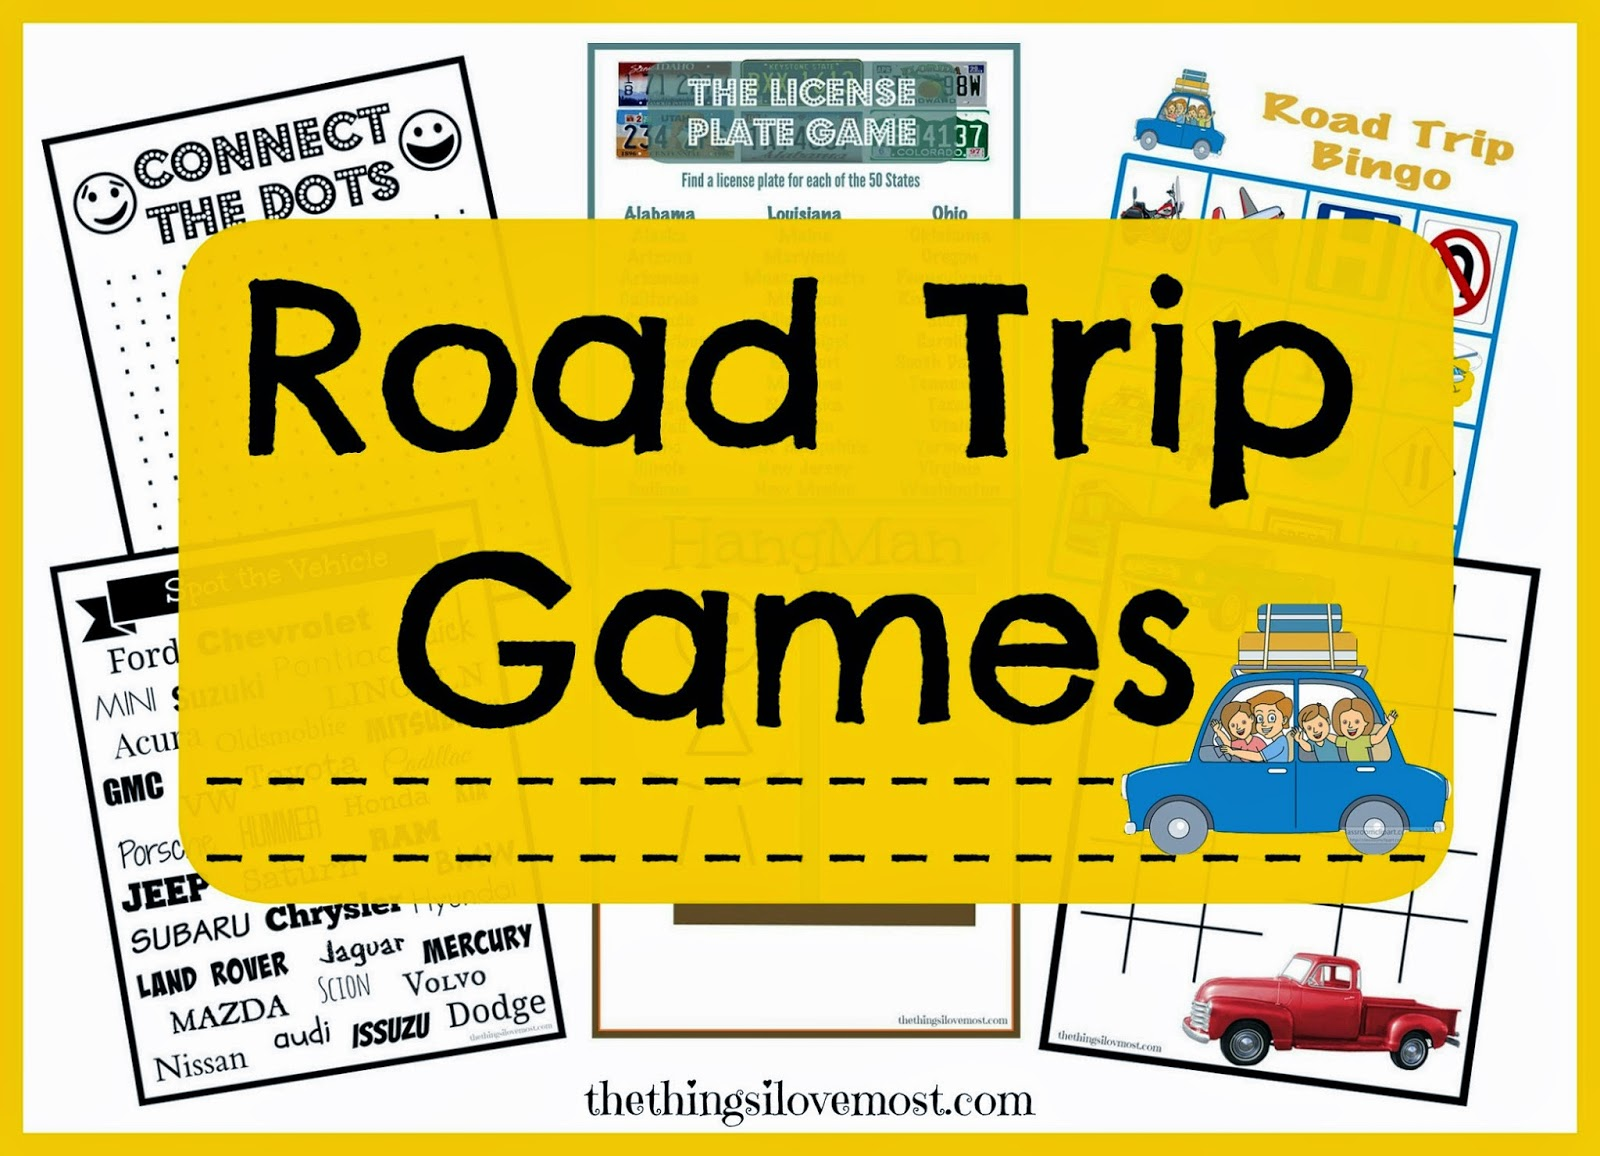 FREE PRINTABLE ROAD TRIP TRAVEL GAMES + 10 WAYS TO KEEP YOUR KIDS ENTERTAINED WHILE TRAVELING